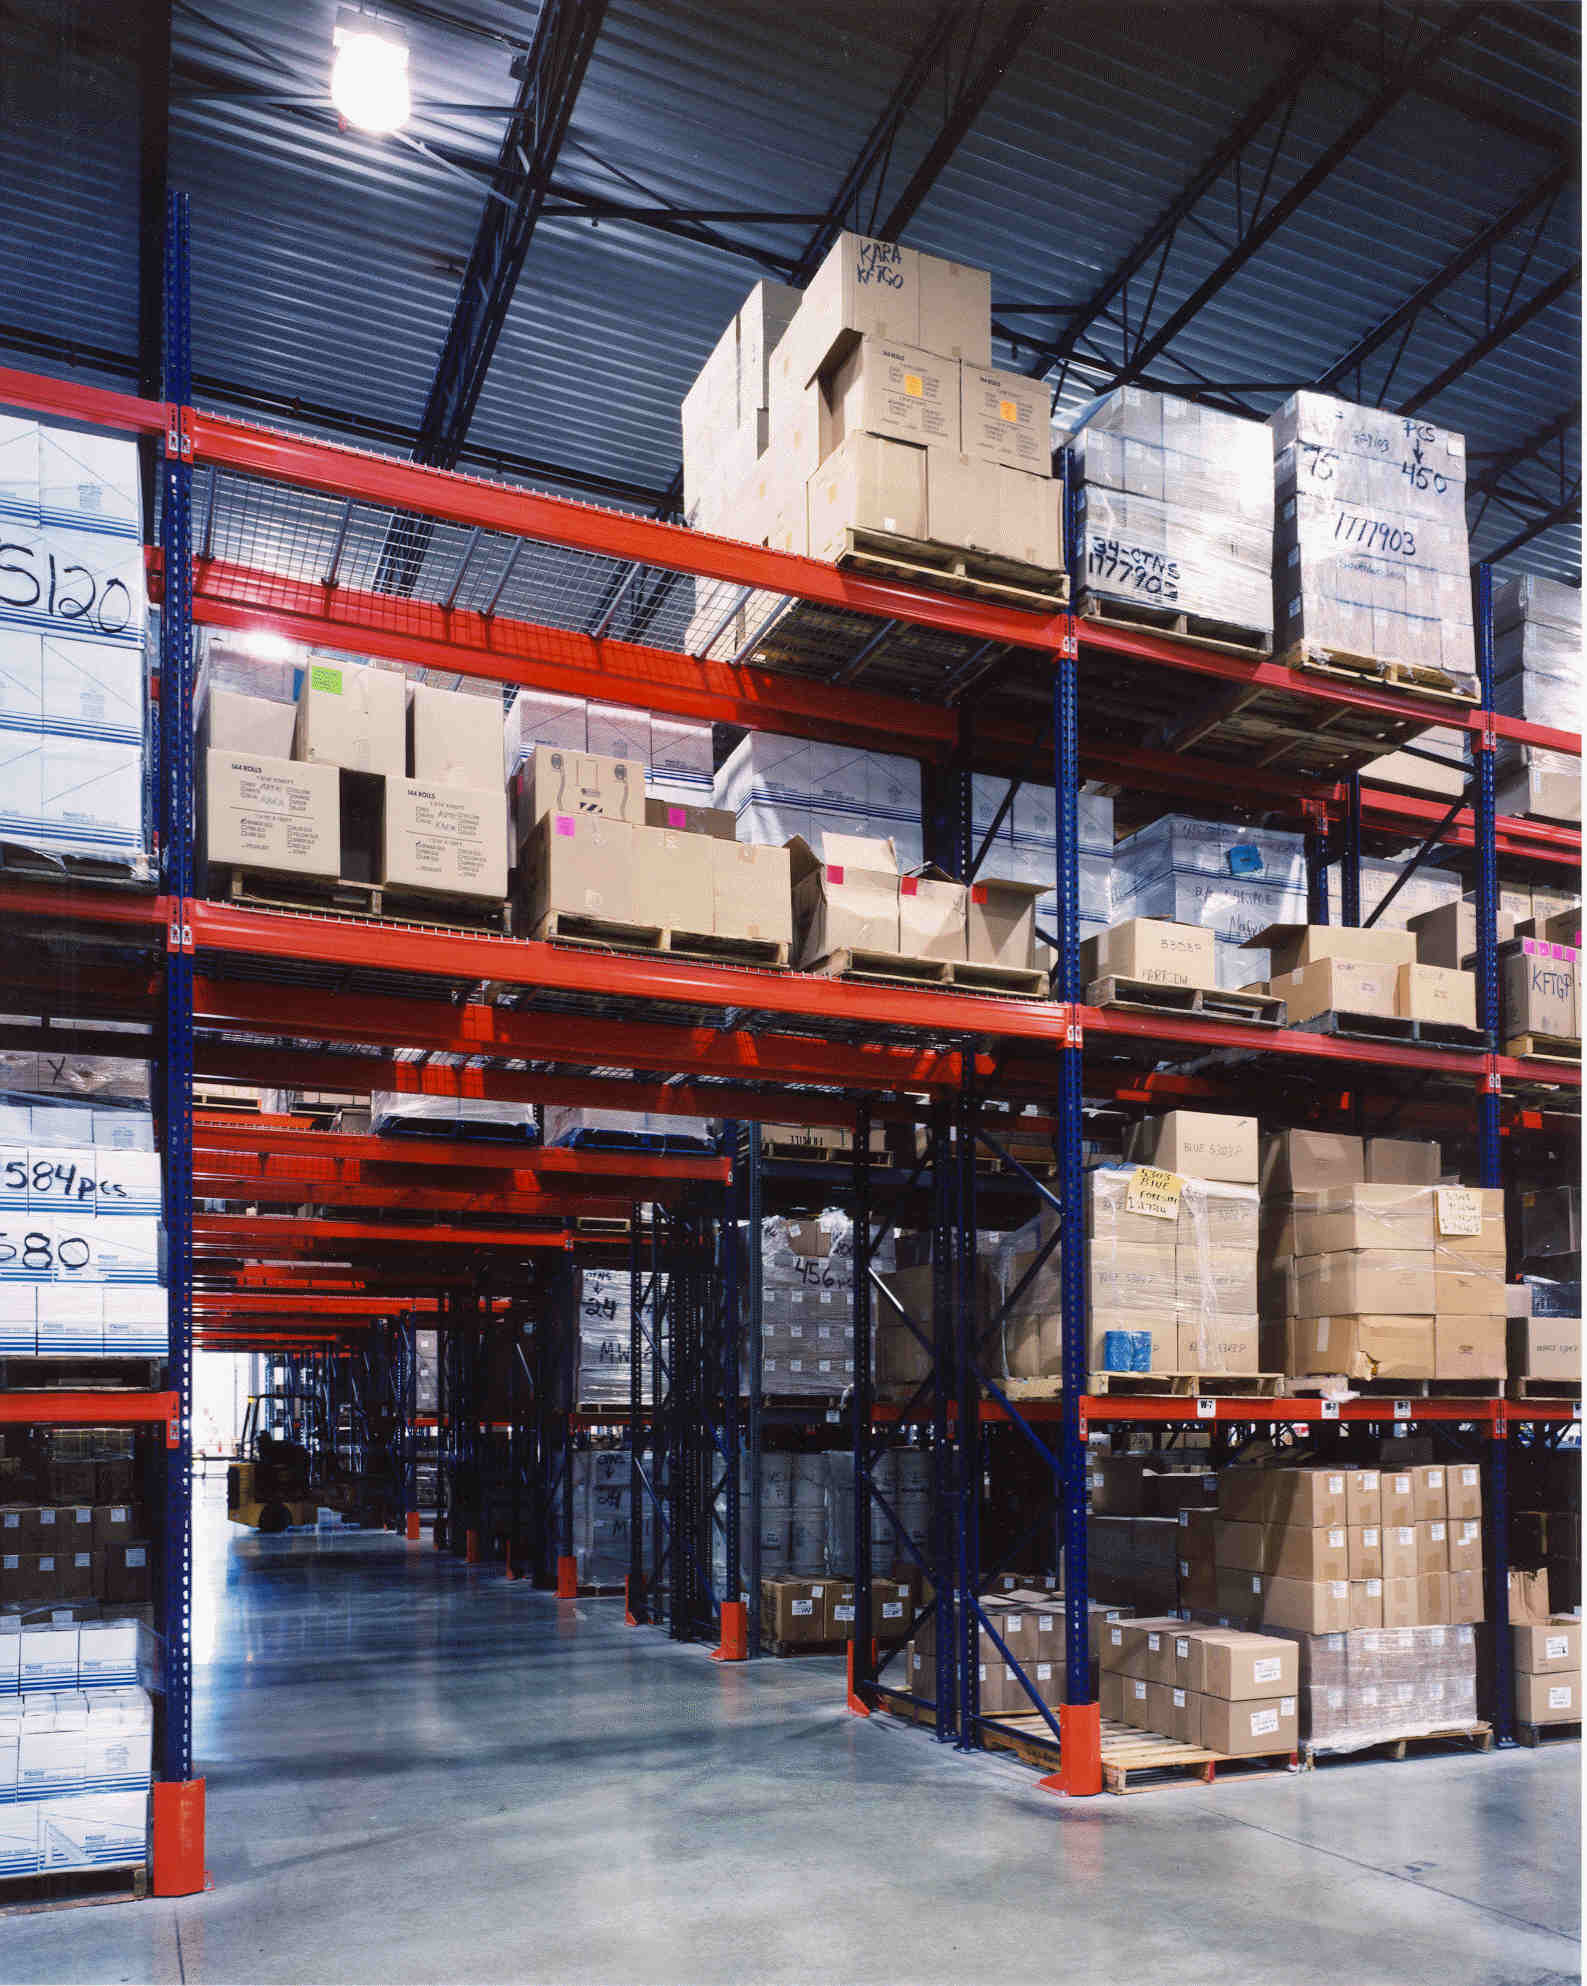 pallet storage washington rack isg and warehouse sites the for california structural